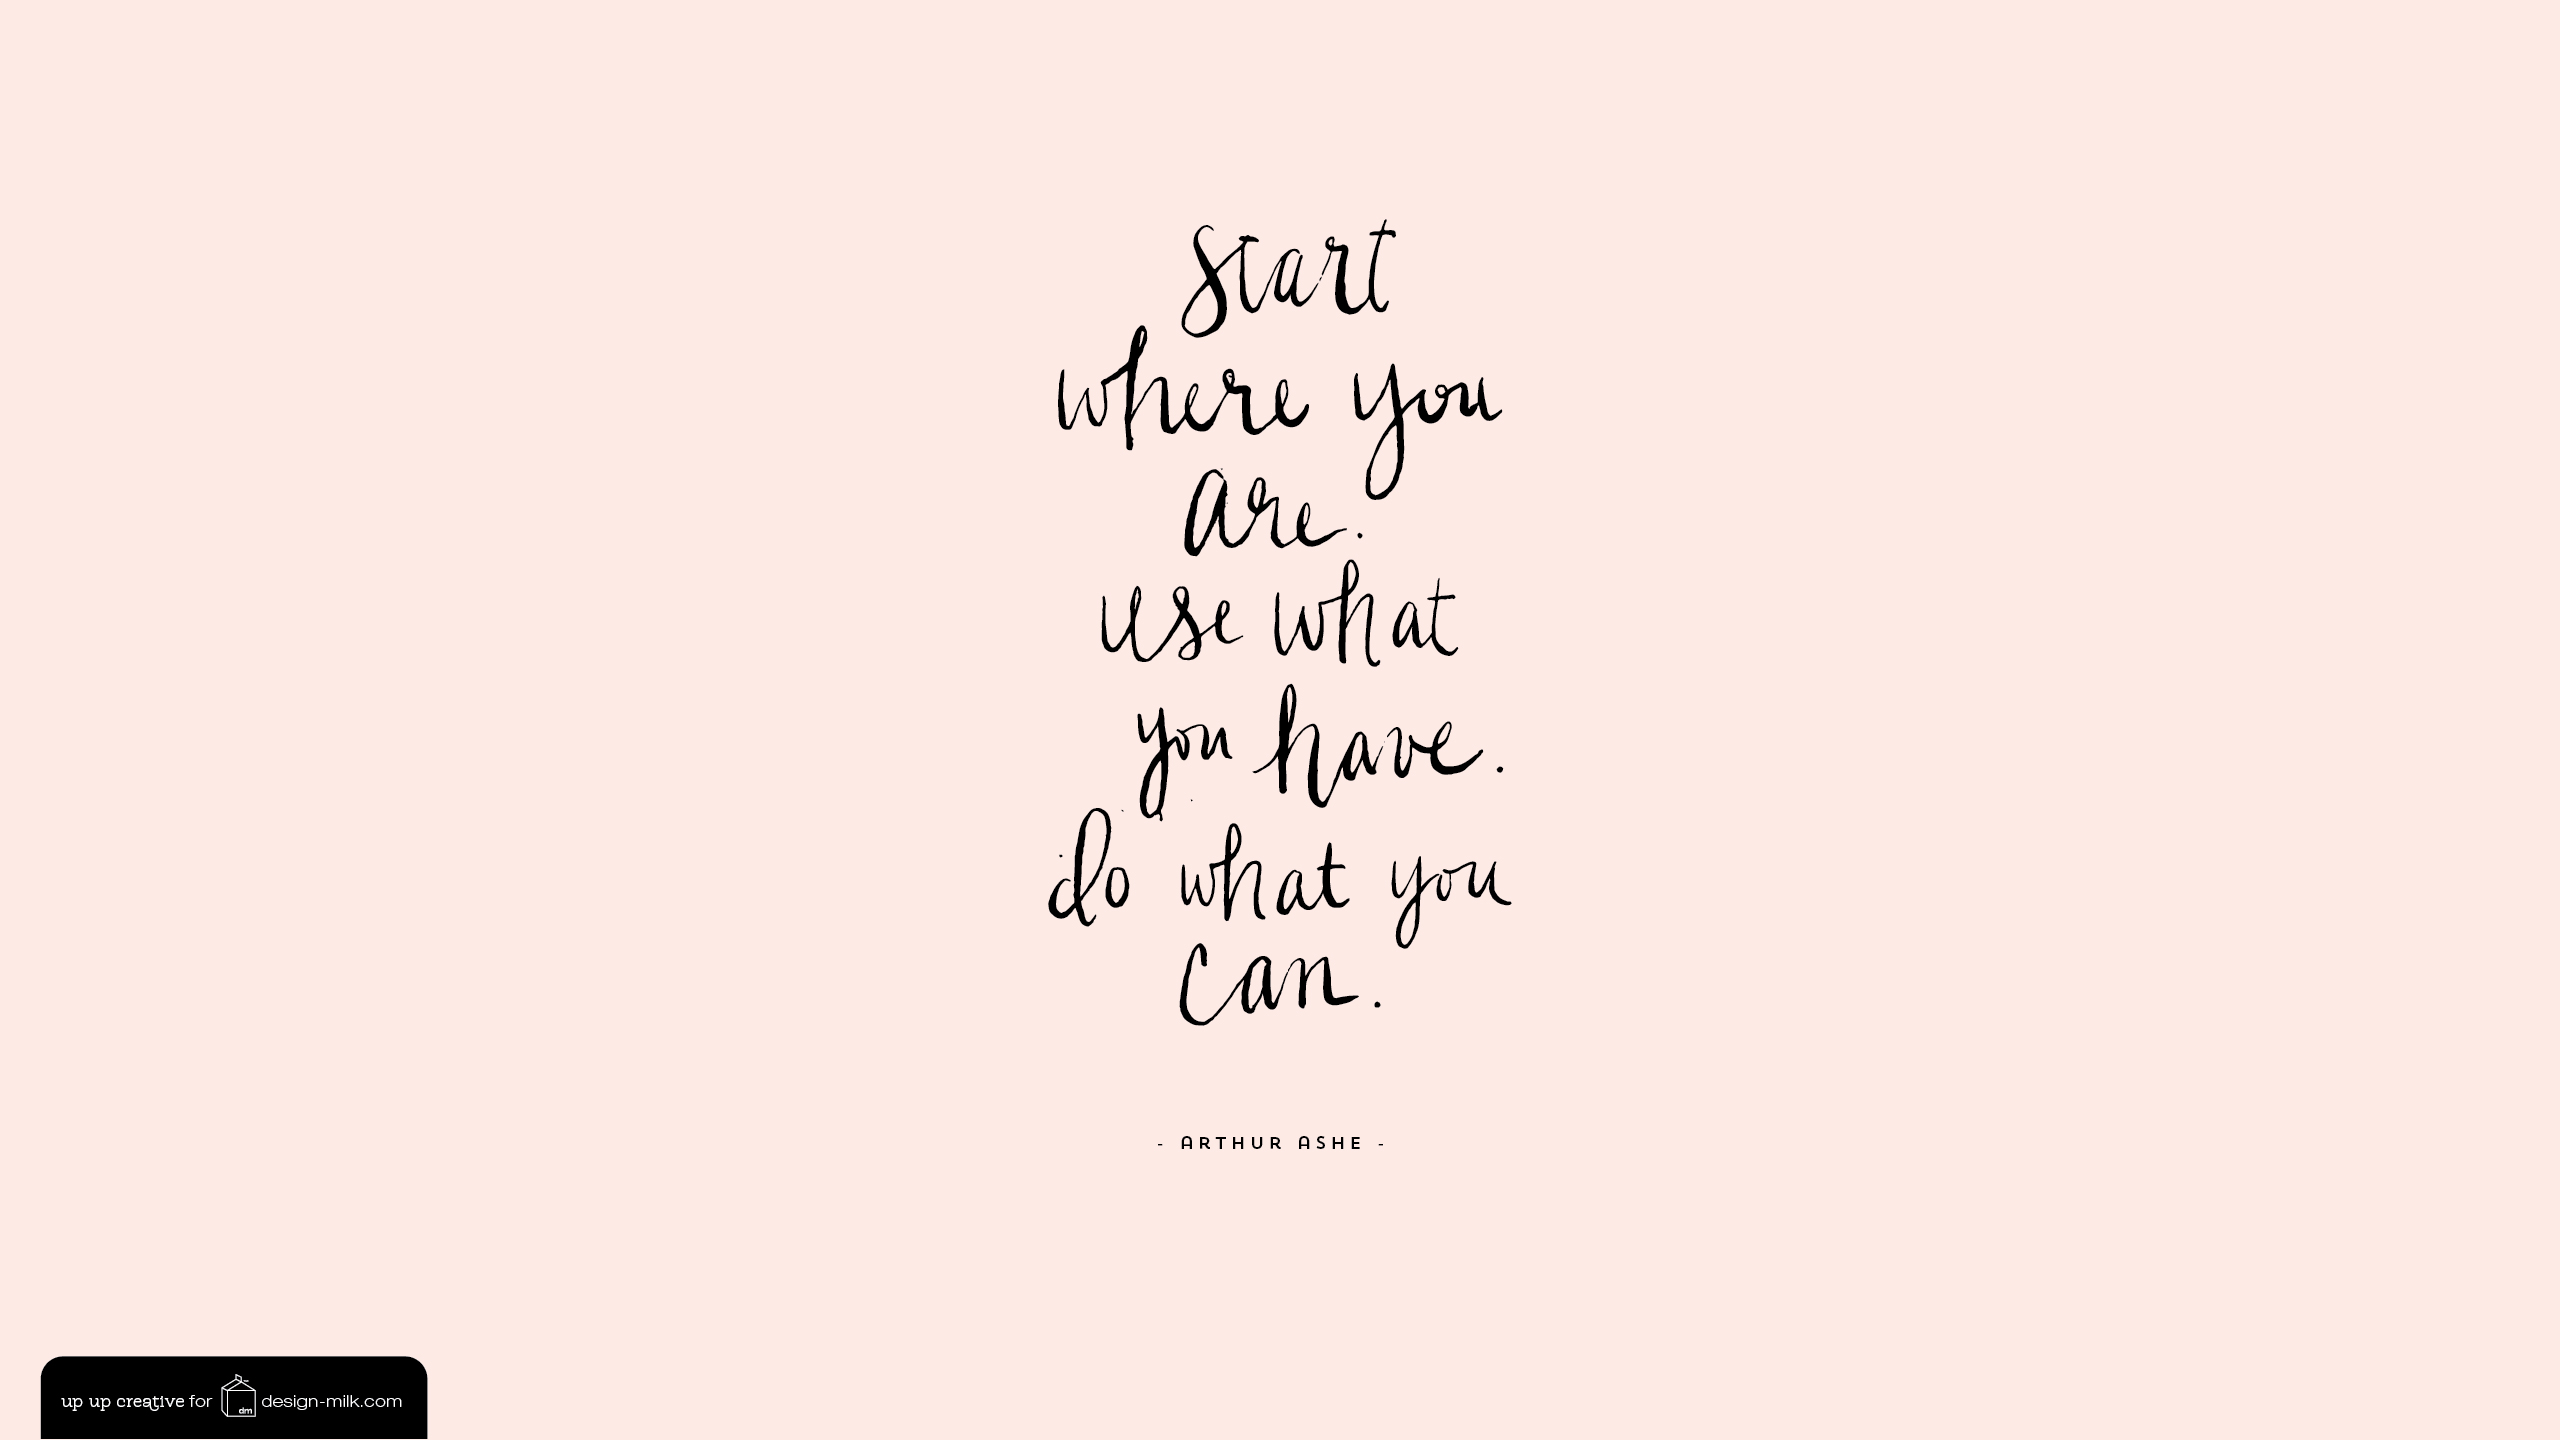 arthur ashe quote desktop and iphone/ipad wallpaper - design milk